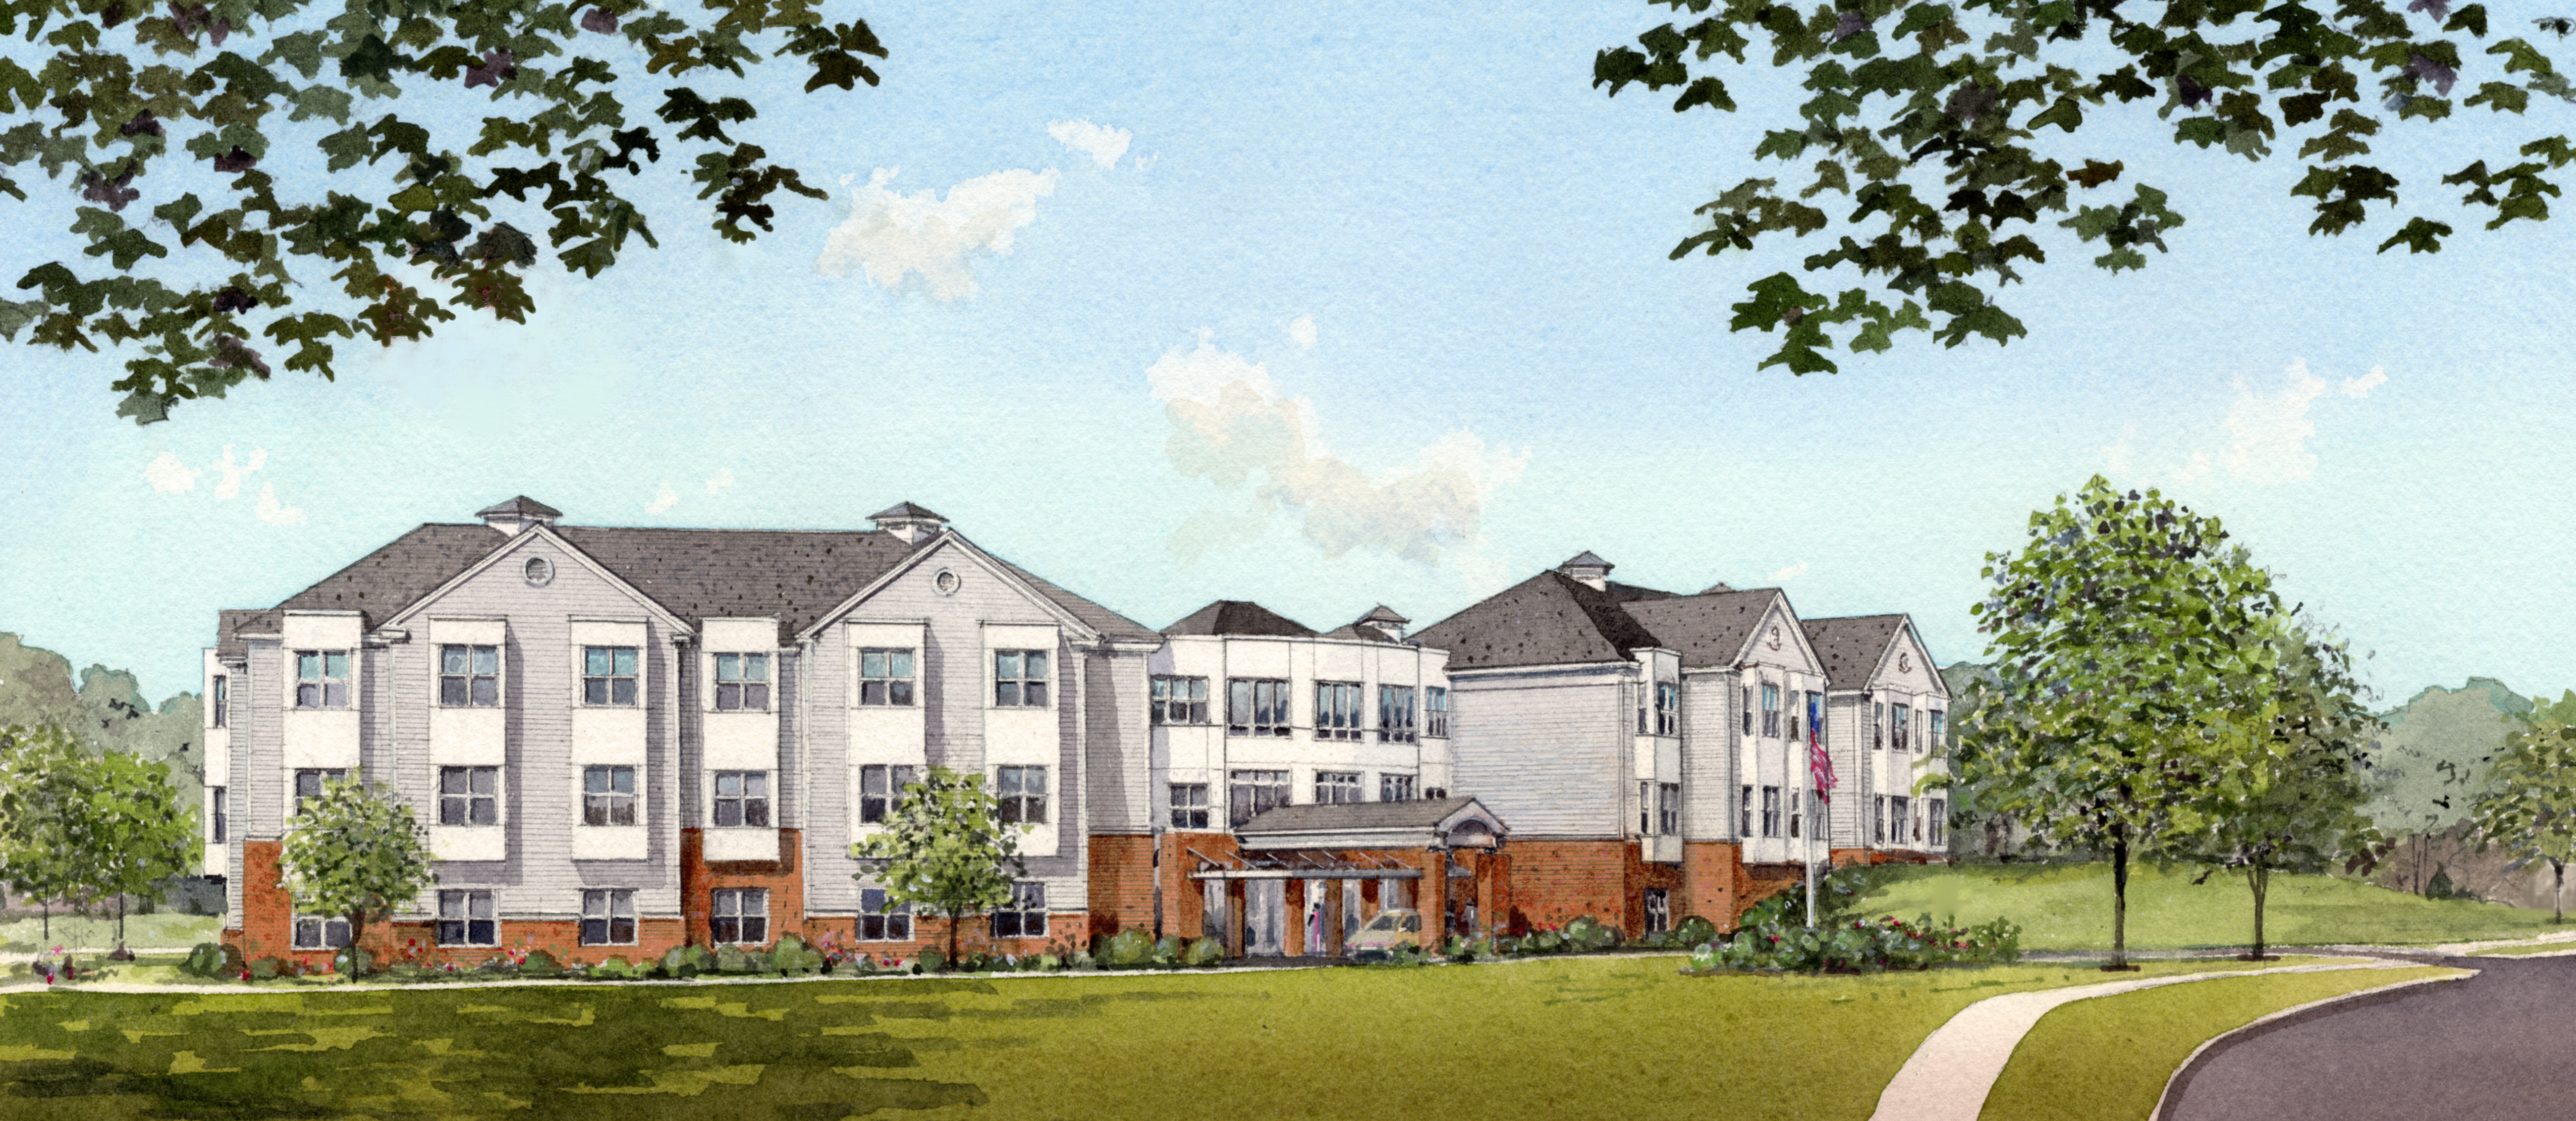 berkshire retirement home to build nursing facility with